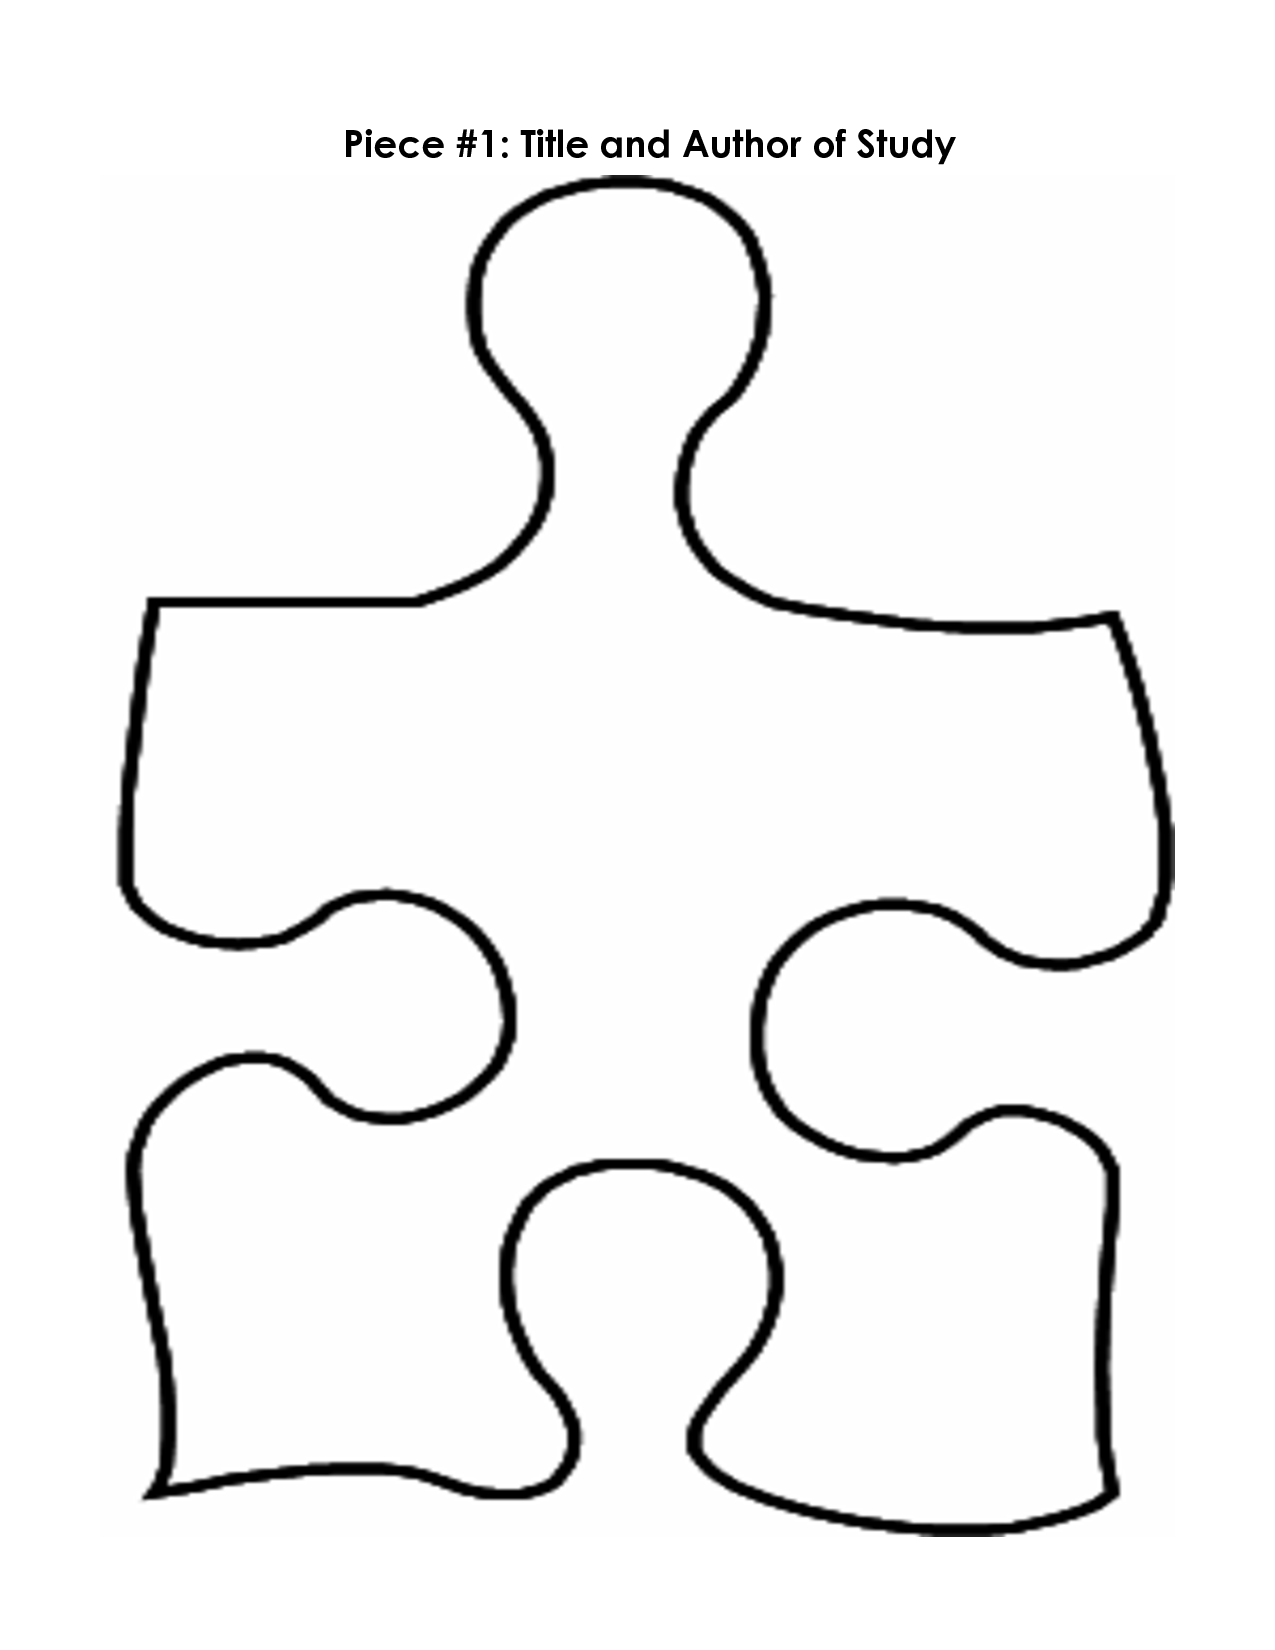 5 Piece Puzzle Template - PNG Jigsaw Puzzle Pieces